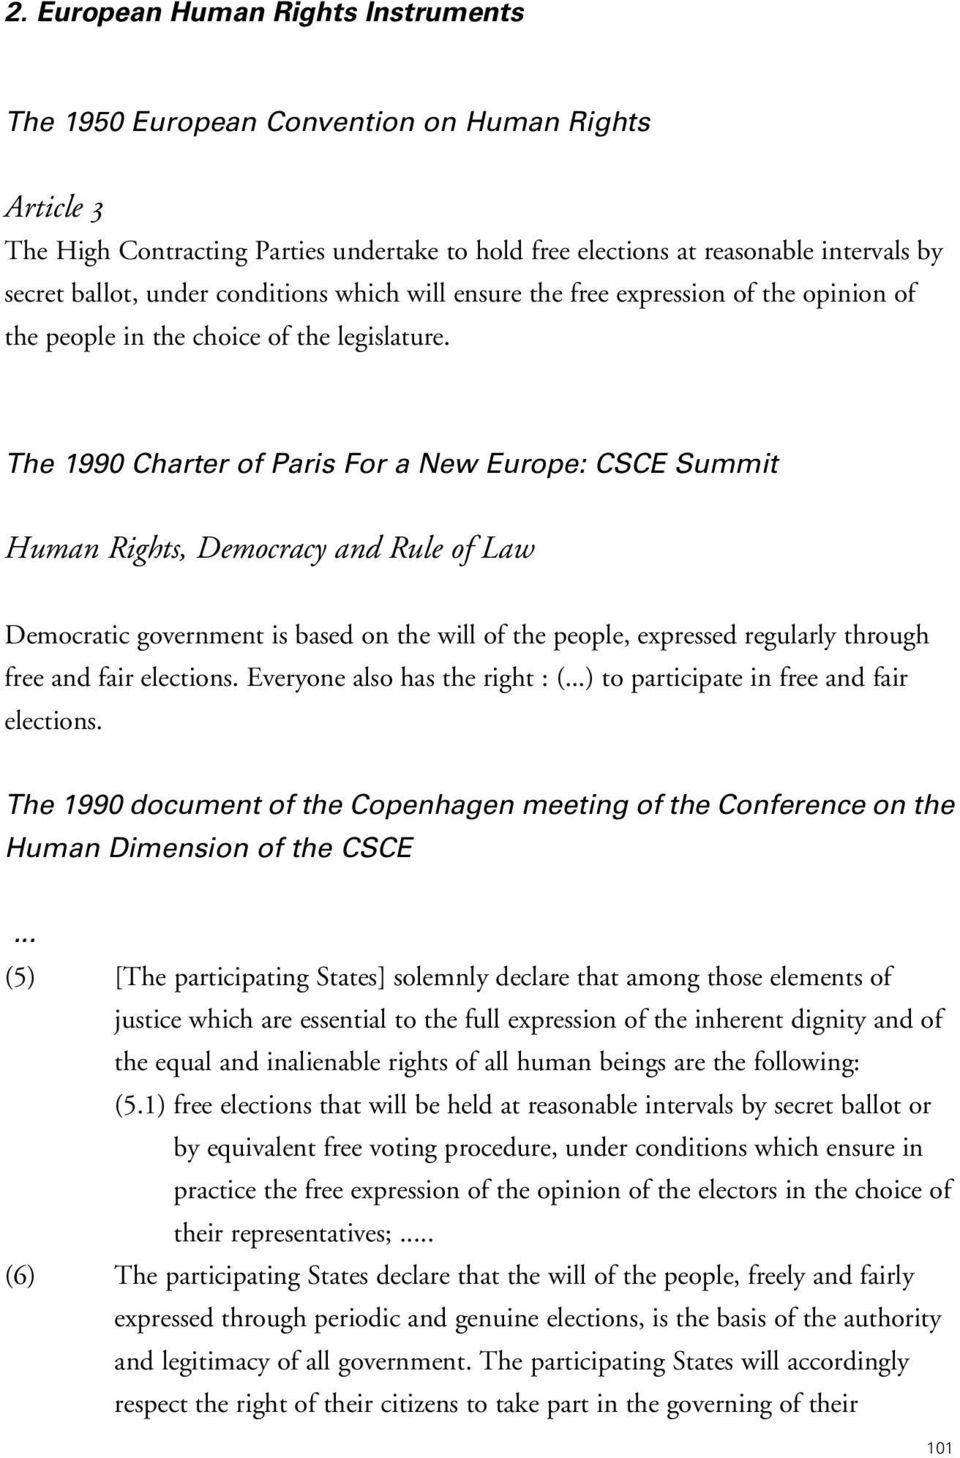 The 1990 Charter of Paris For a New Europe: CSCE Summit Human Rights, Democracy and Rule of Law Democratic government is based on the will of the people, expressed regularly through free and fair